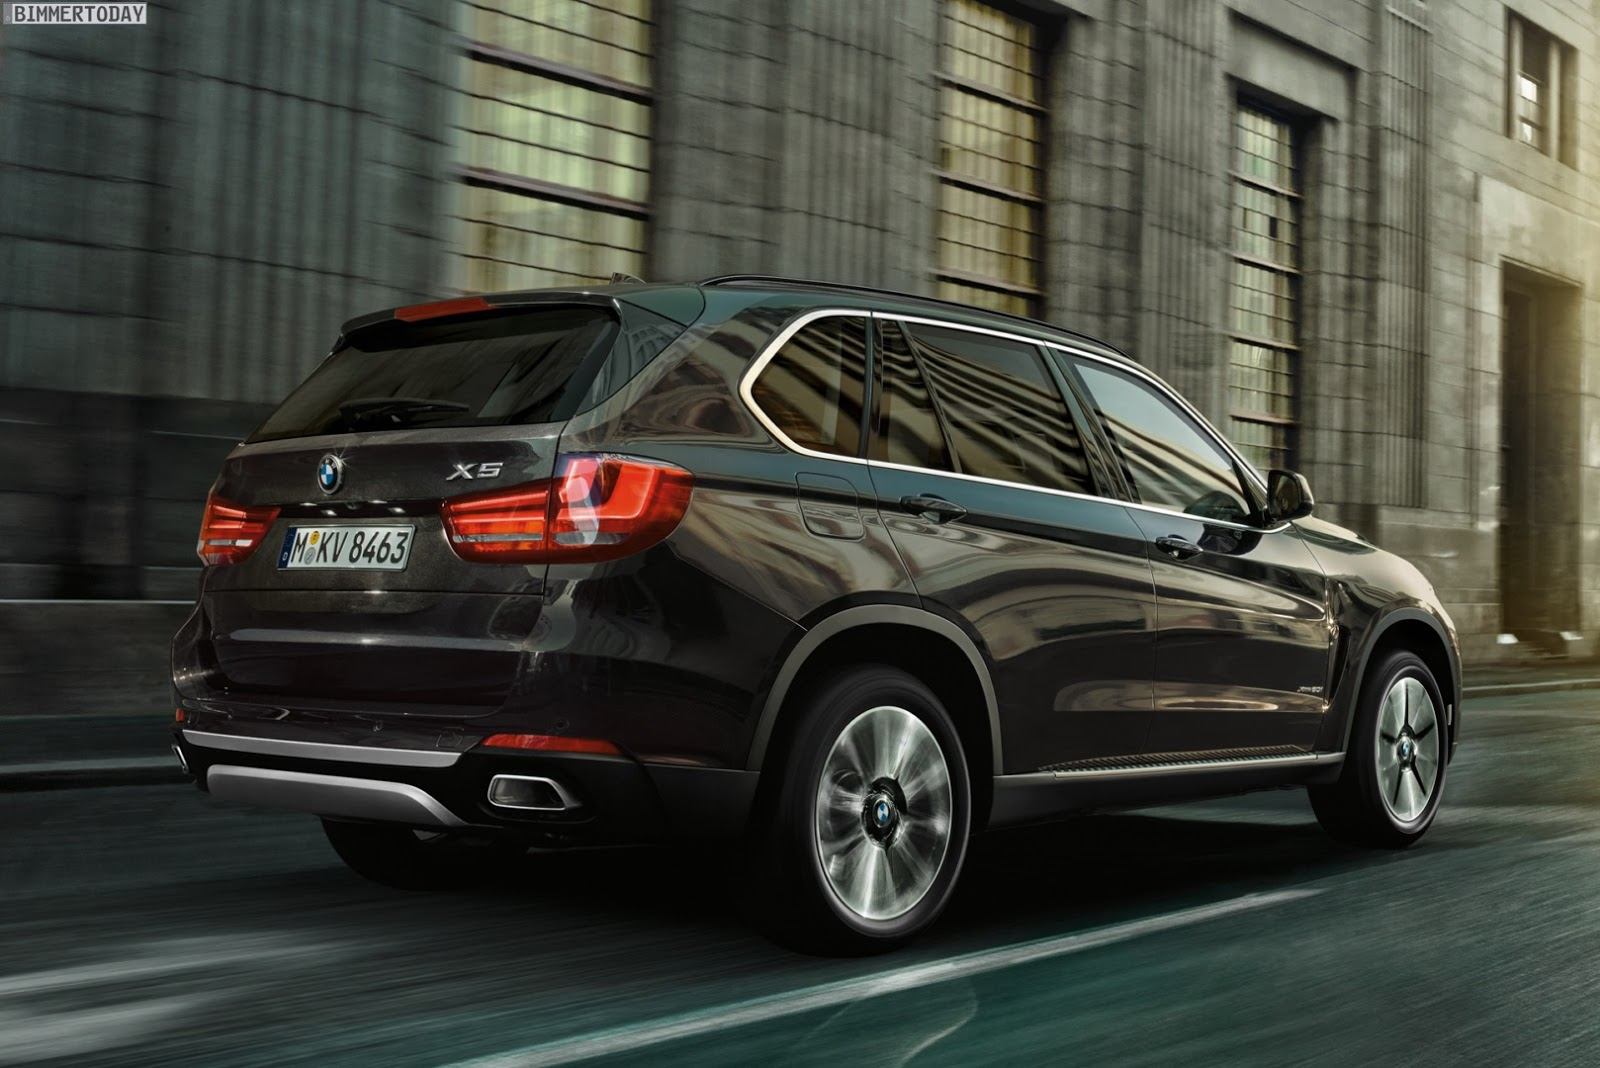 Future Cars 2020 >> BMW's New X5 F15 Security Plus is Truly Bulletproof